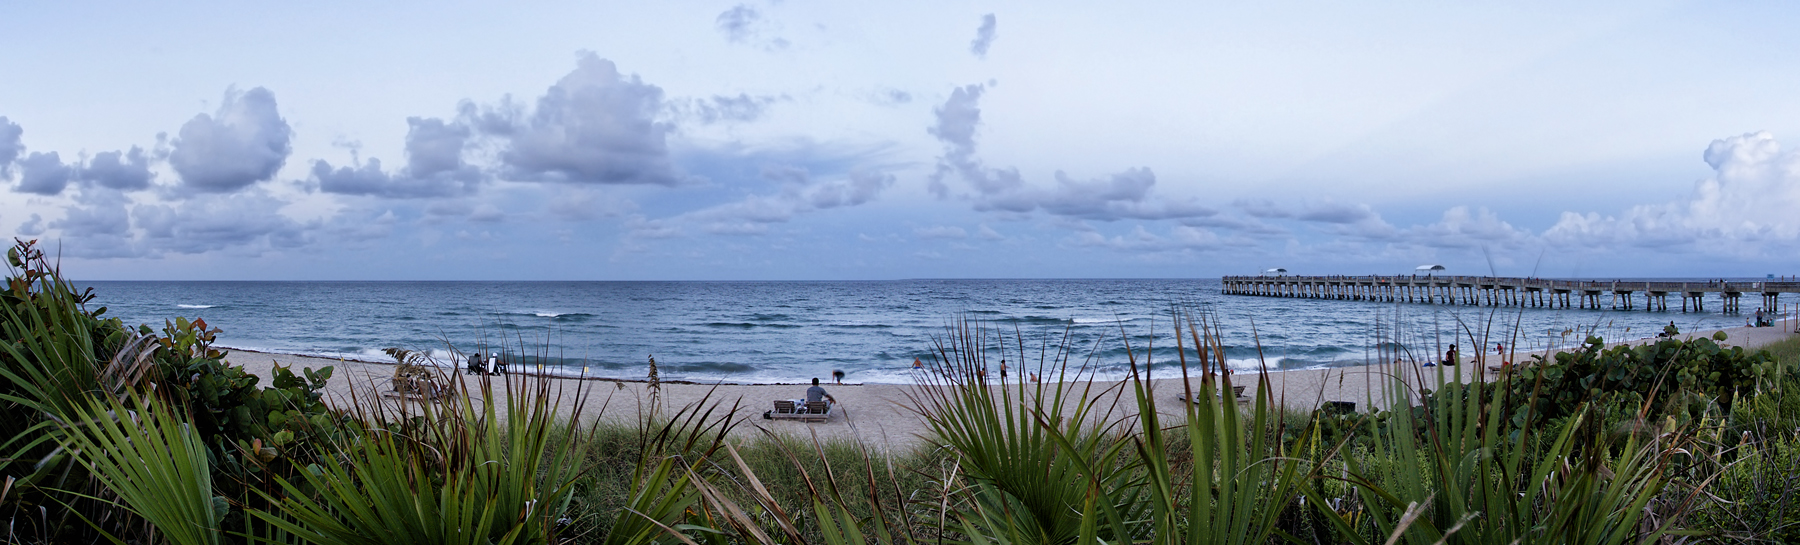 3-shot panorama of the Atlantic Ocean from Florida featuring the classic Lake Worth Pier - Nikon D300 with Tamron 17-50mm tripod mounted @ f/11 1/3 ISO 200 stitched using Photomerge in Photoshop CS5